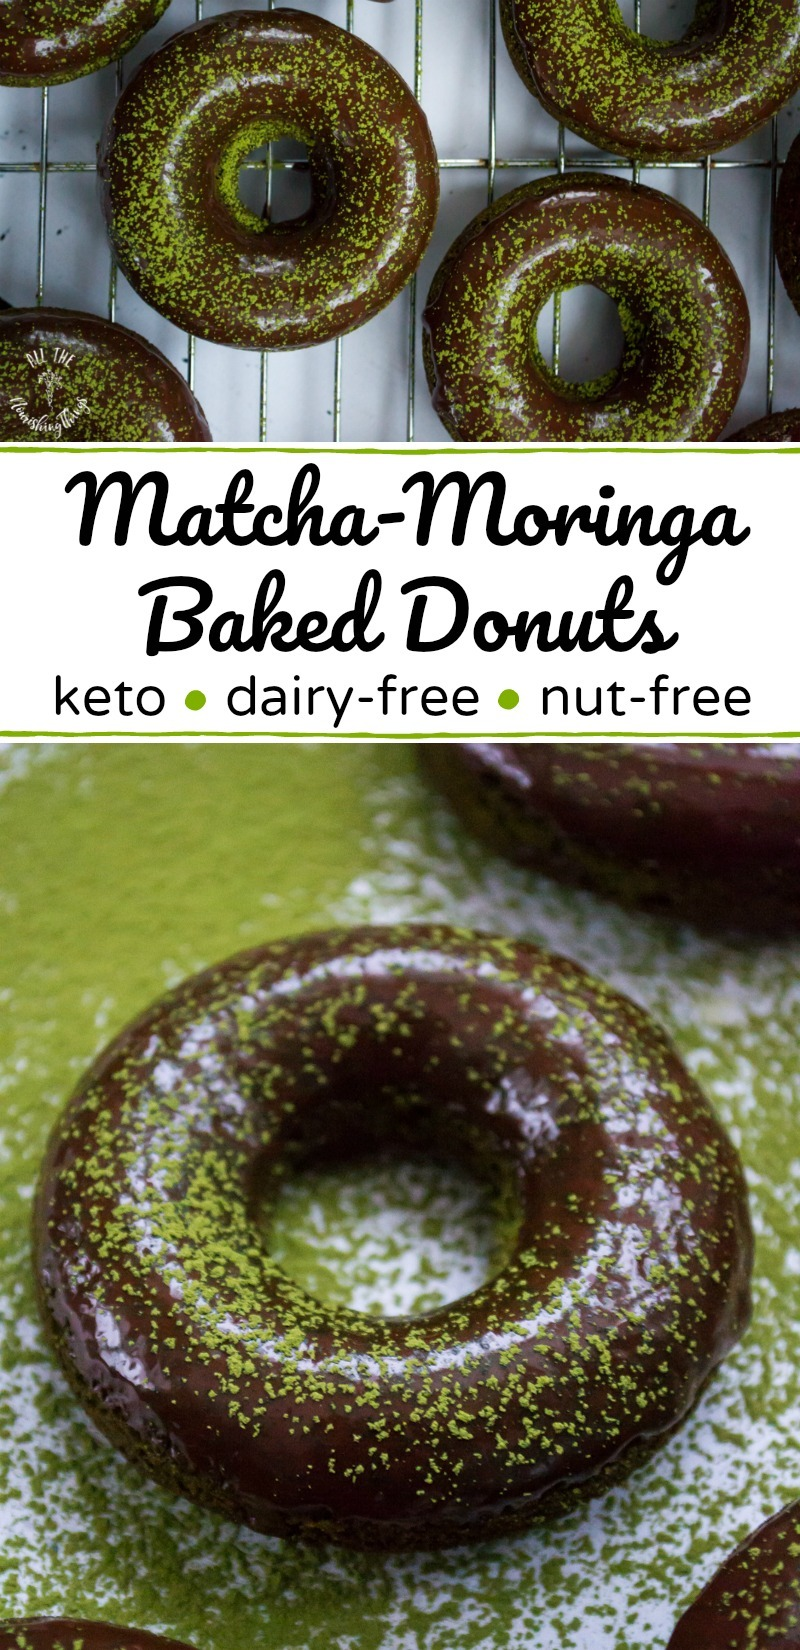 collage of keto matcha-moringa baked donuts with green powder and text overlay